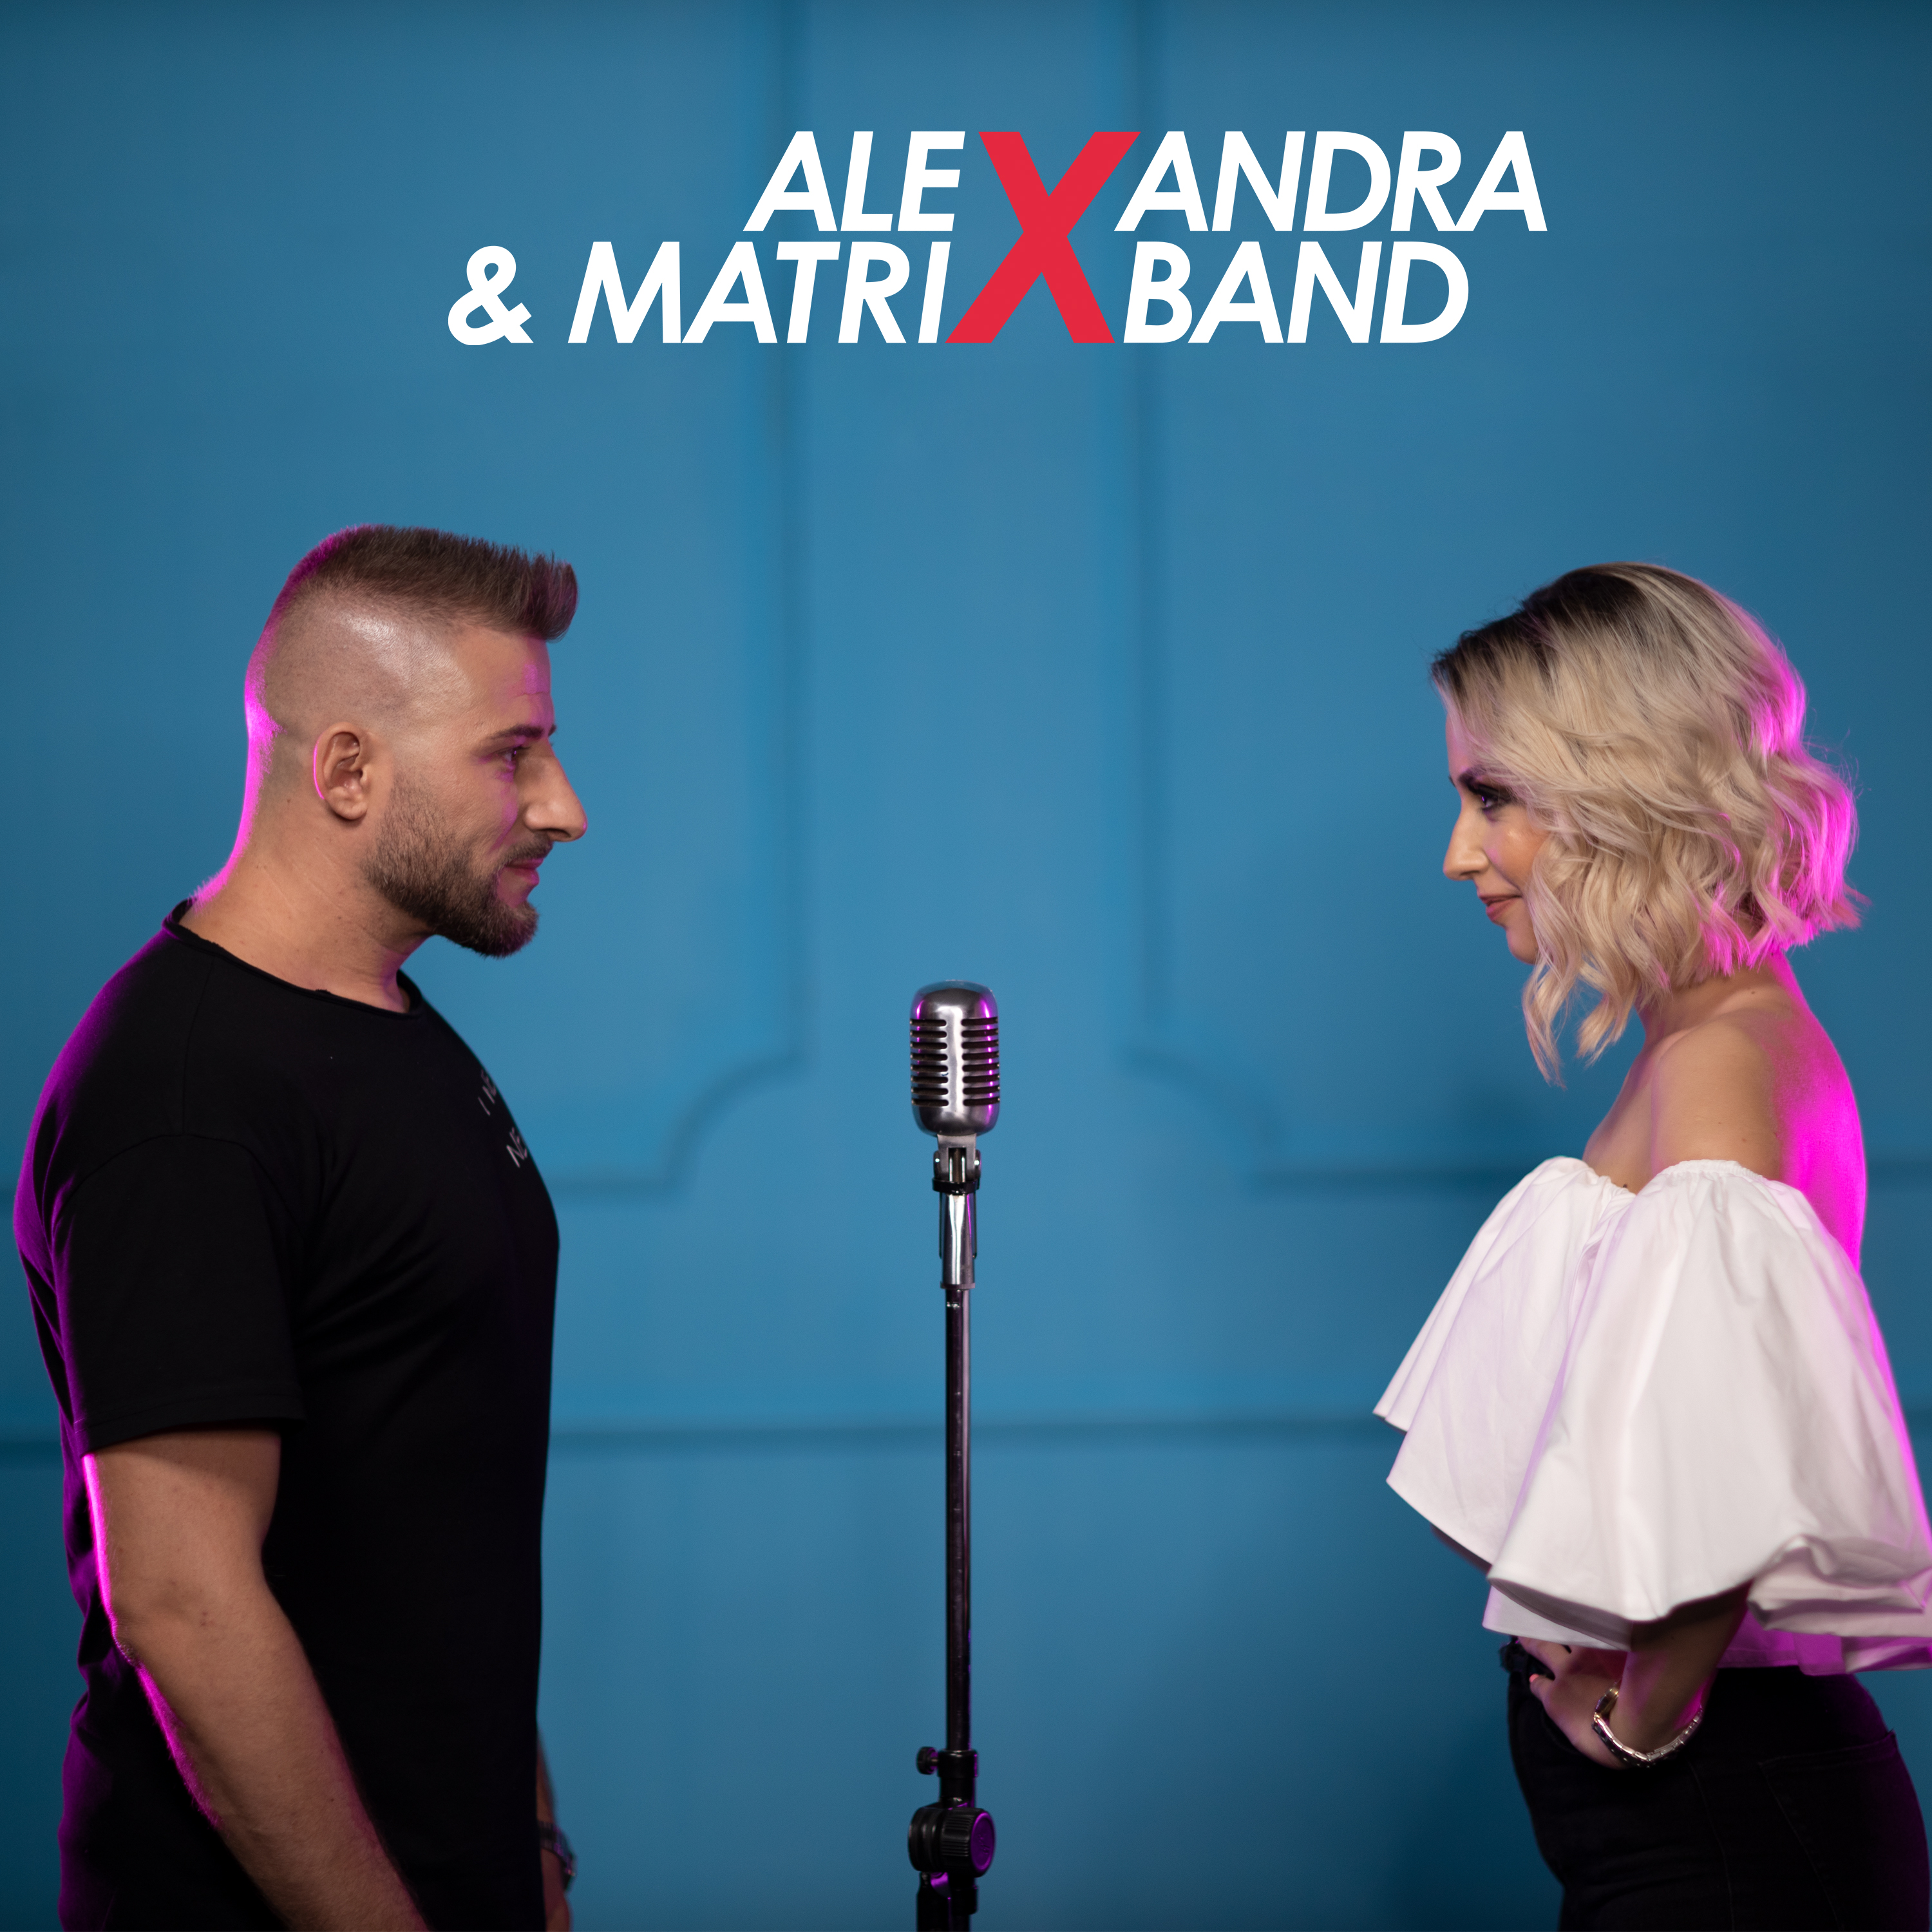 Alexandra & Matrix band vs Joce Panov - Laga laga (Mashup) - Listen on Spotify, Deezer, YouTube, Google Play Music and Buy on Amazon, iTunes Google Play | EMDC Network